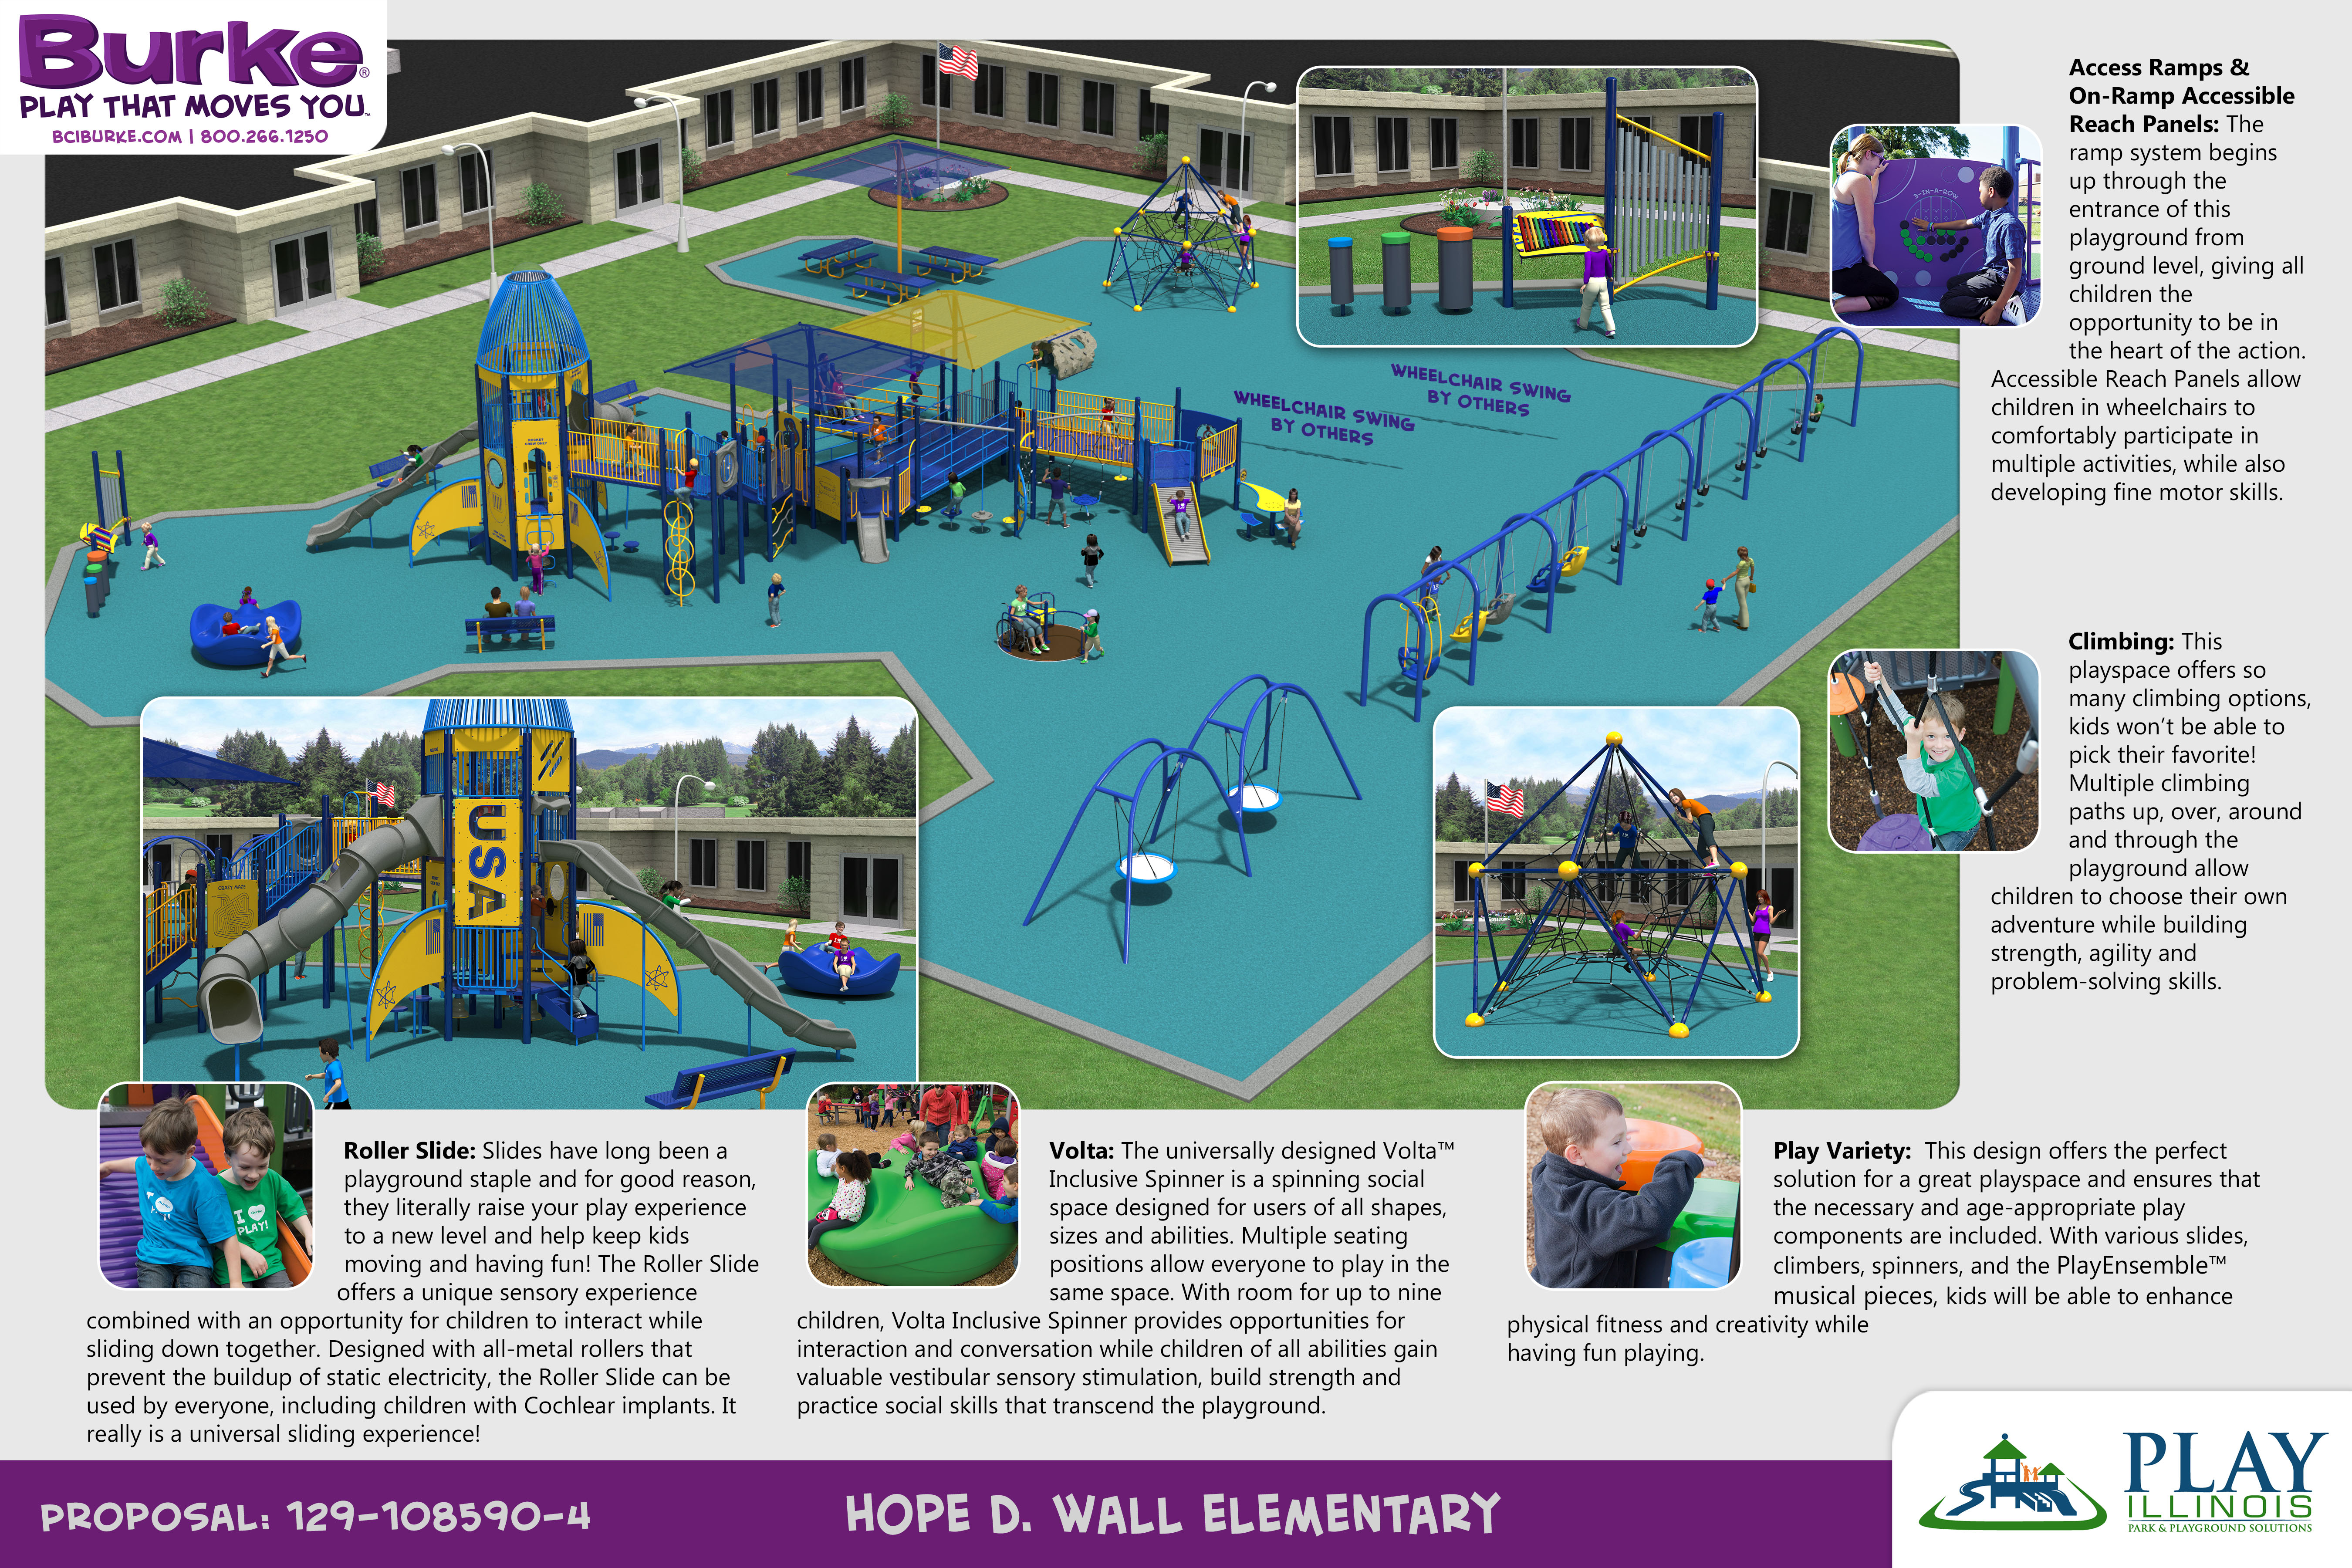 129-108590-4A-1 dream build play experience accessible playgrounds